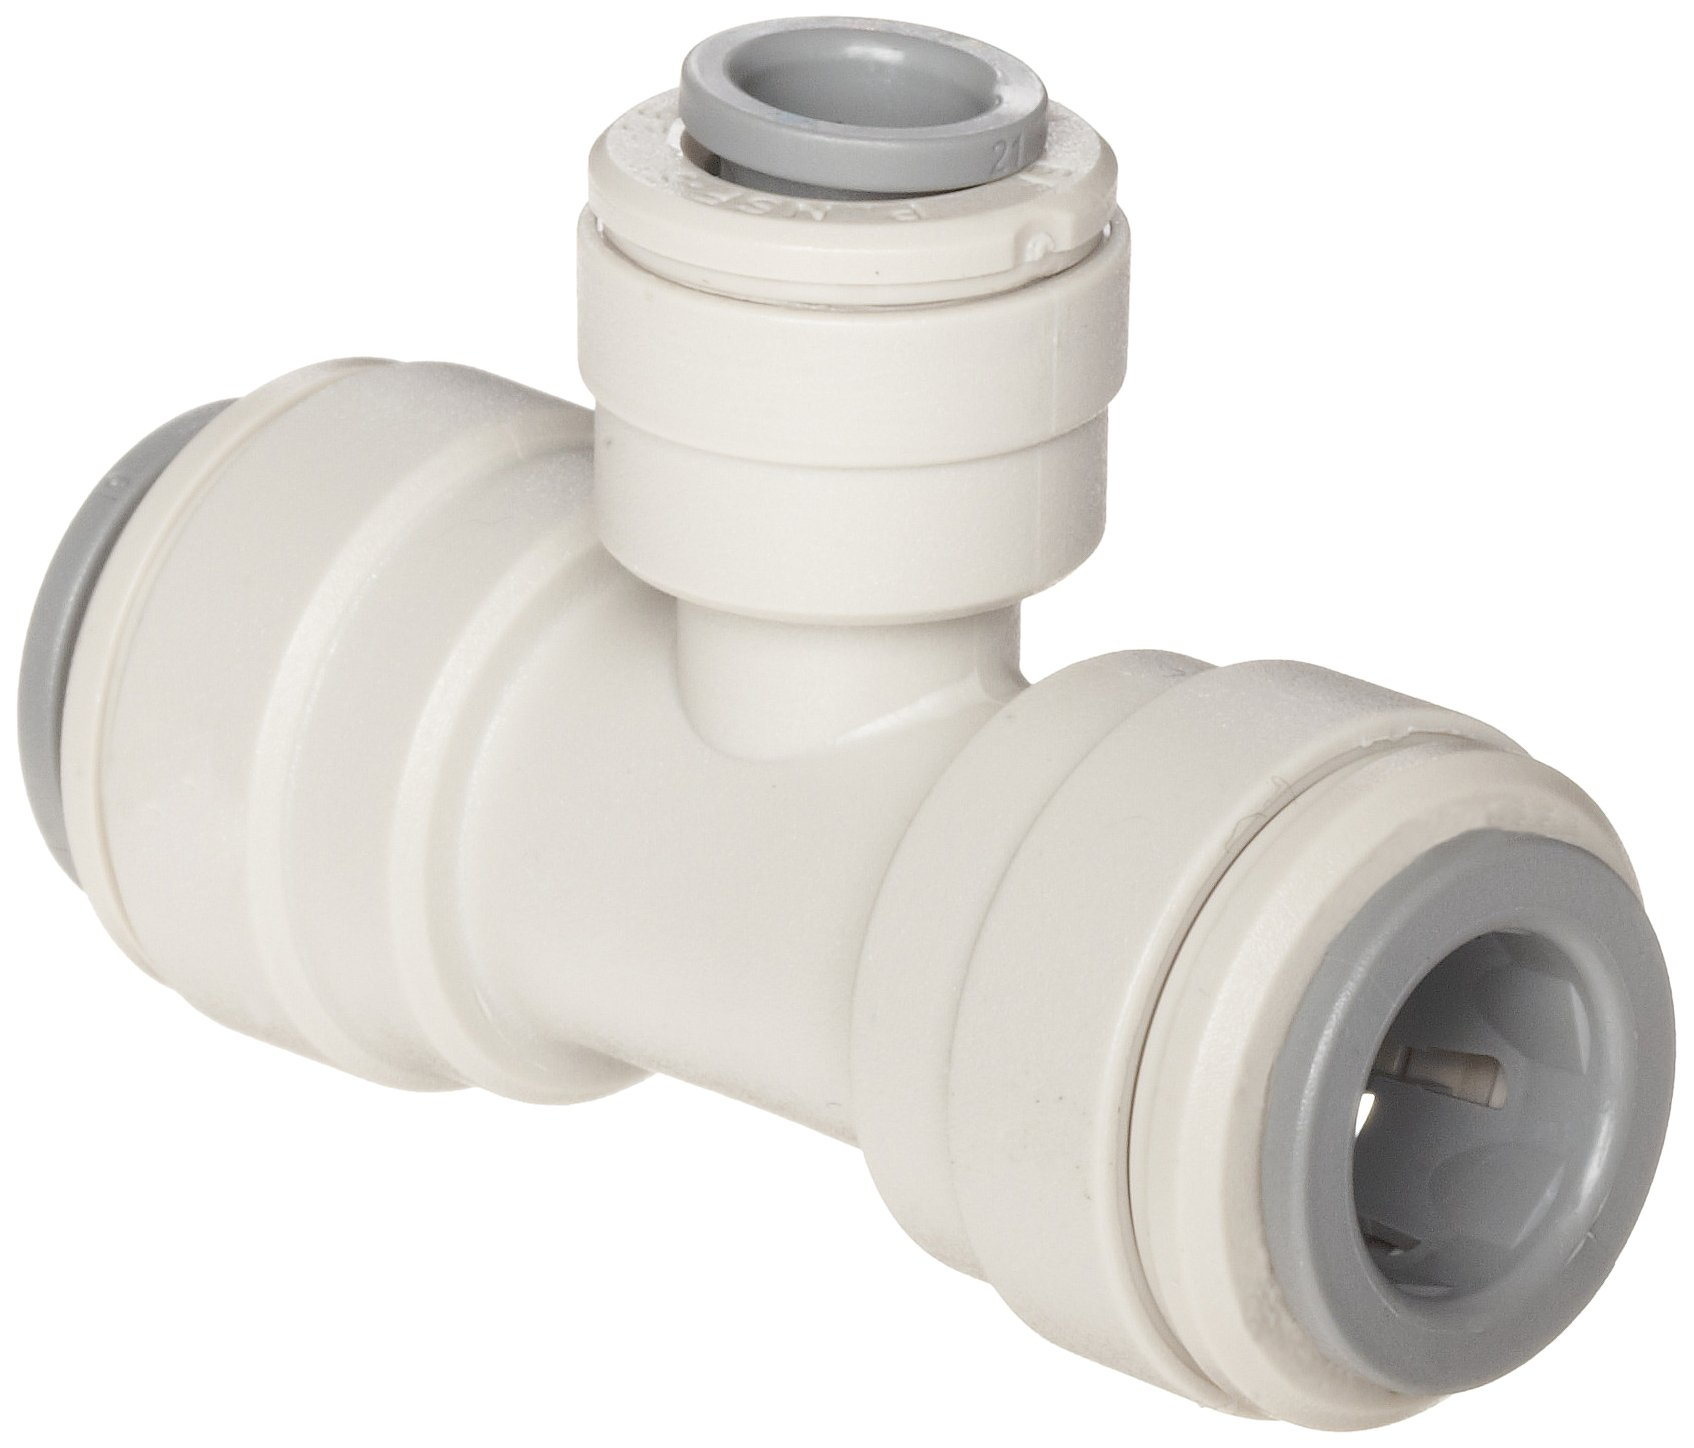 John Guest Acetal Copolymer Push-To-Connect Tube Fitting, Reducing Branch Tee, 1/2'' x 3/8'' x 1/2'' Tube OD (Pack of 10) by John Guest